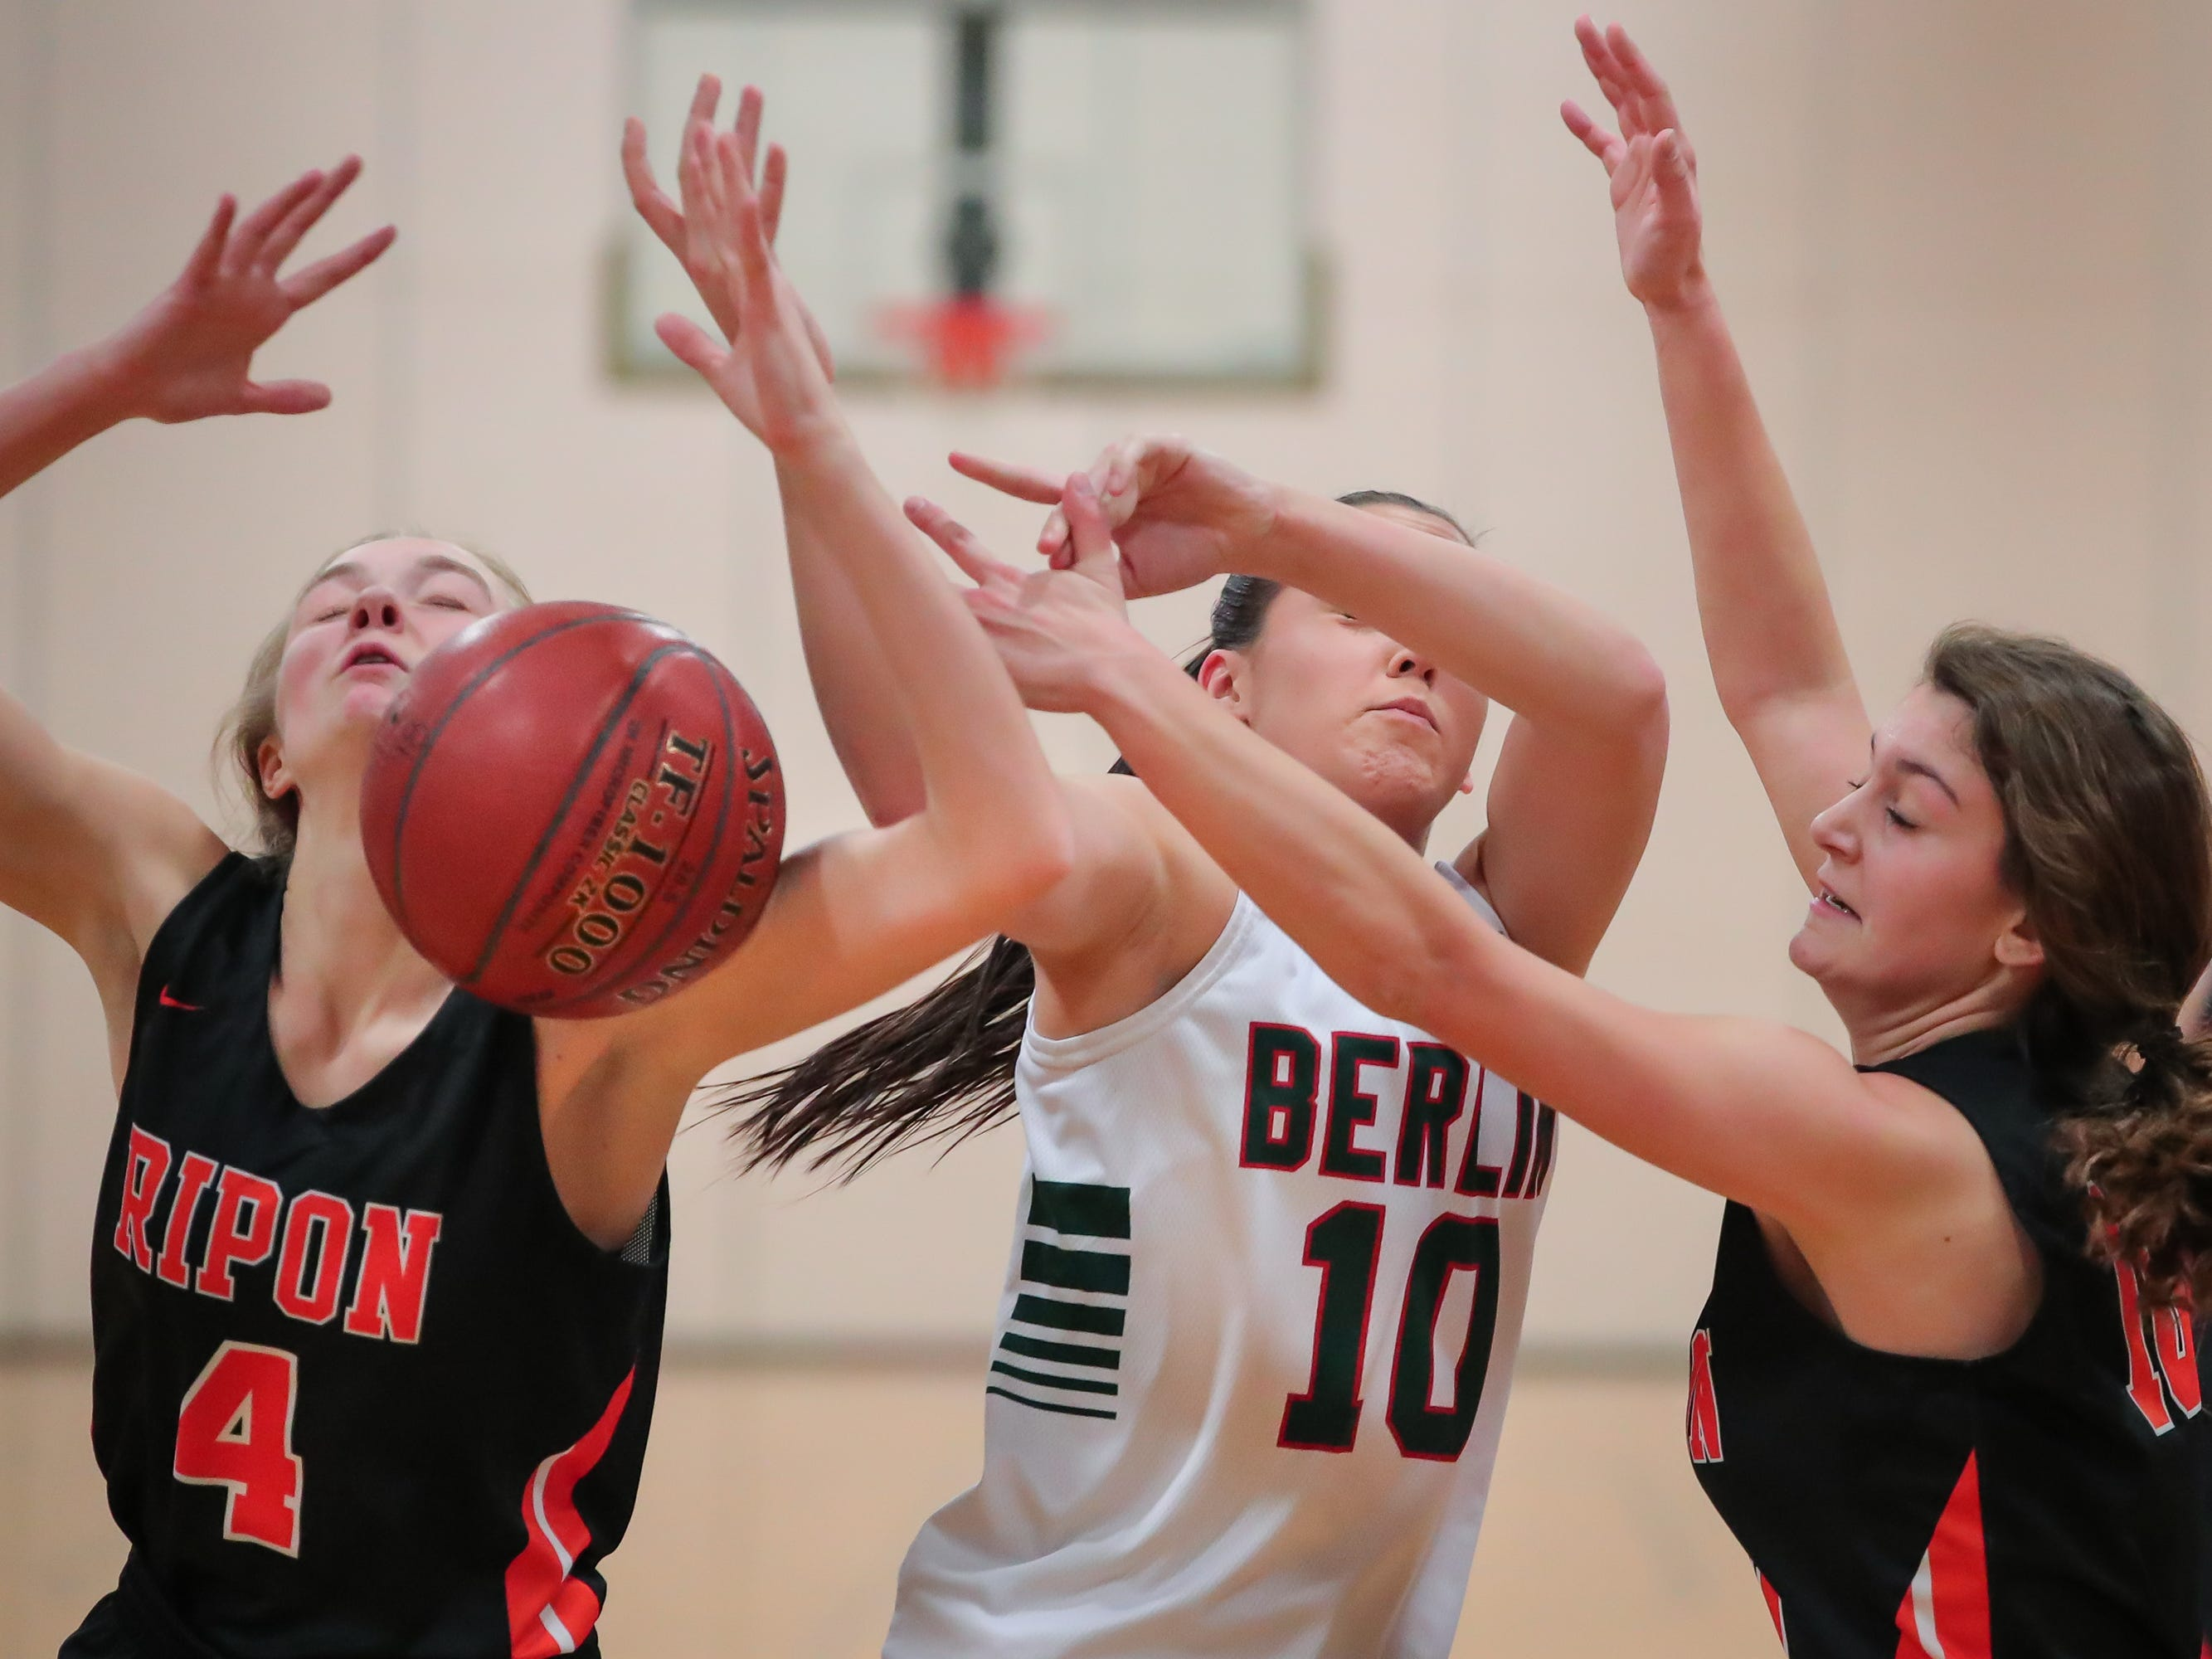 Elle Lewis (4) of Ripon and Kara Block (10) of Berlin battle for a rebound. The Berlin Indians hosted the Ripon Tigers in an East Central Conference girls basketball matchup Friday evening, December 21, 2018.